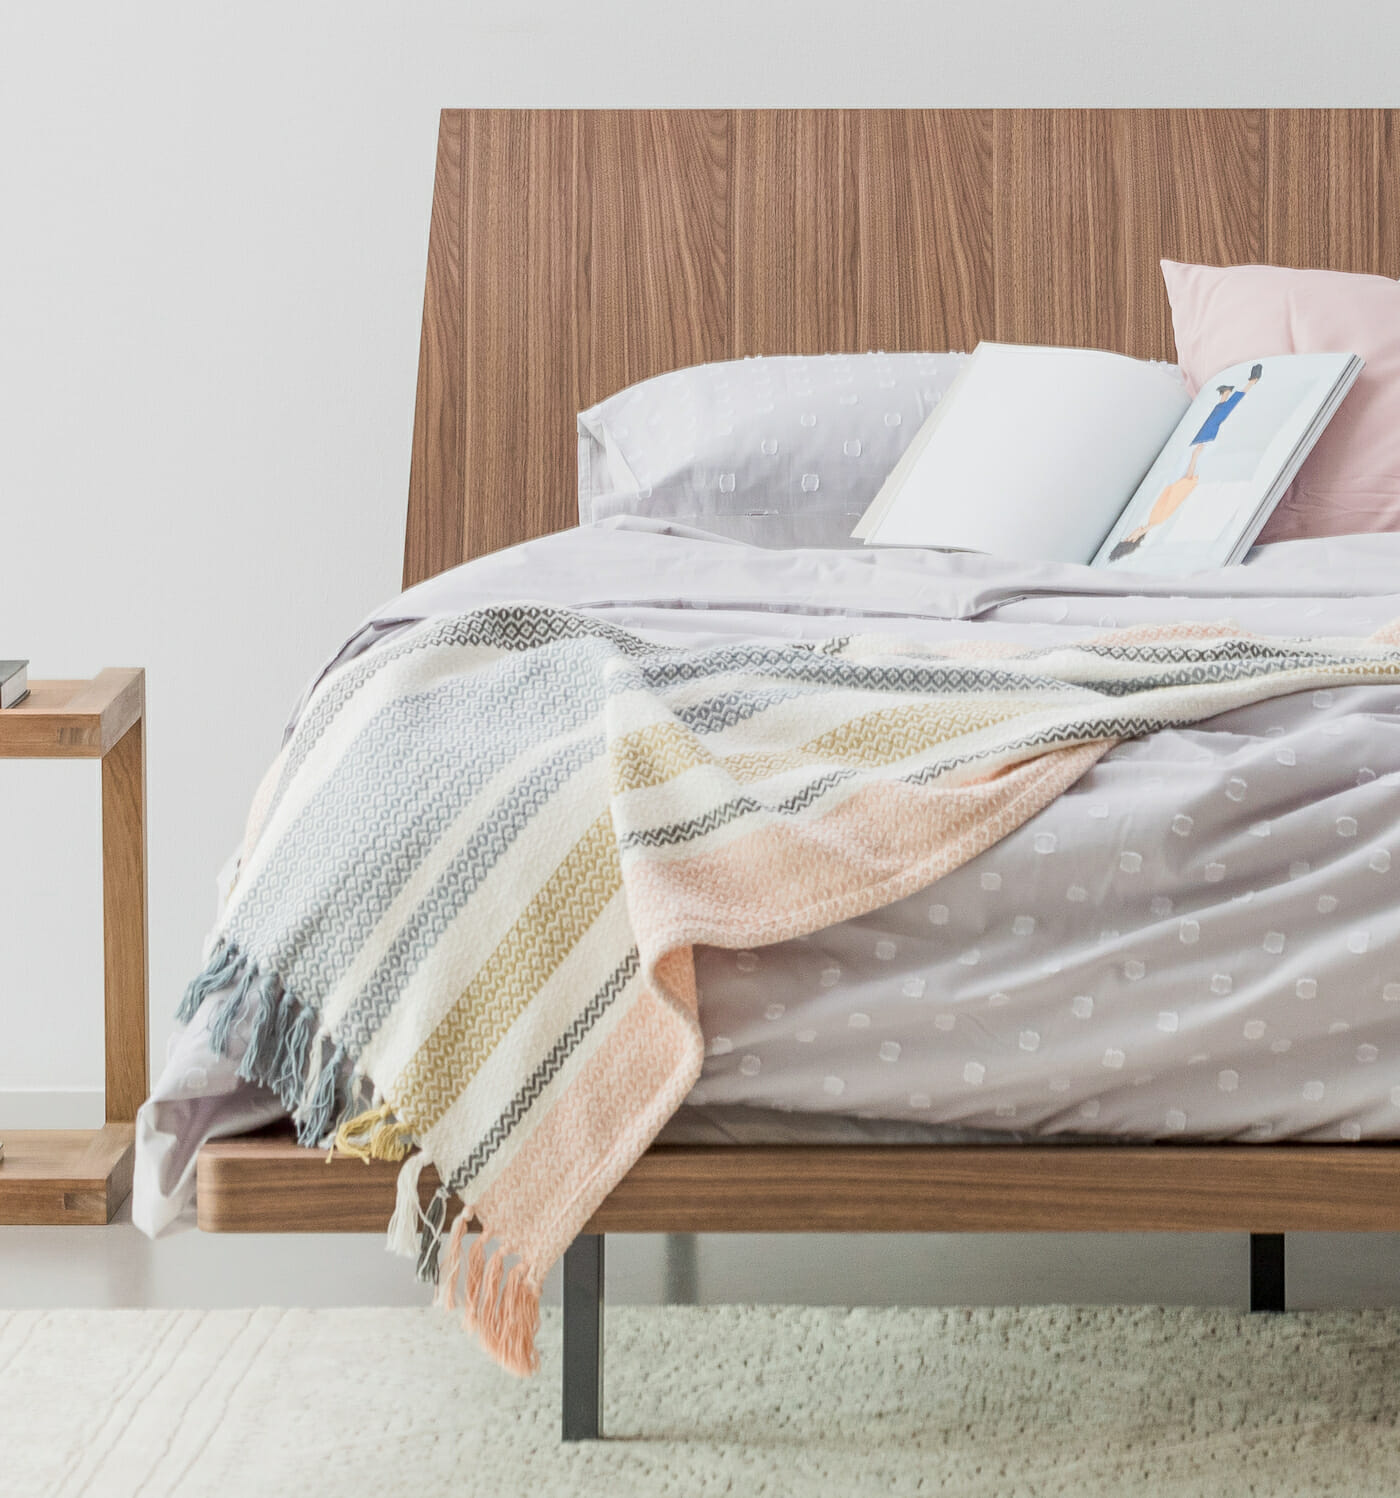 Noa sunset bed